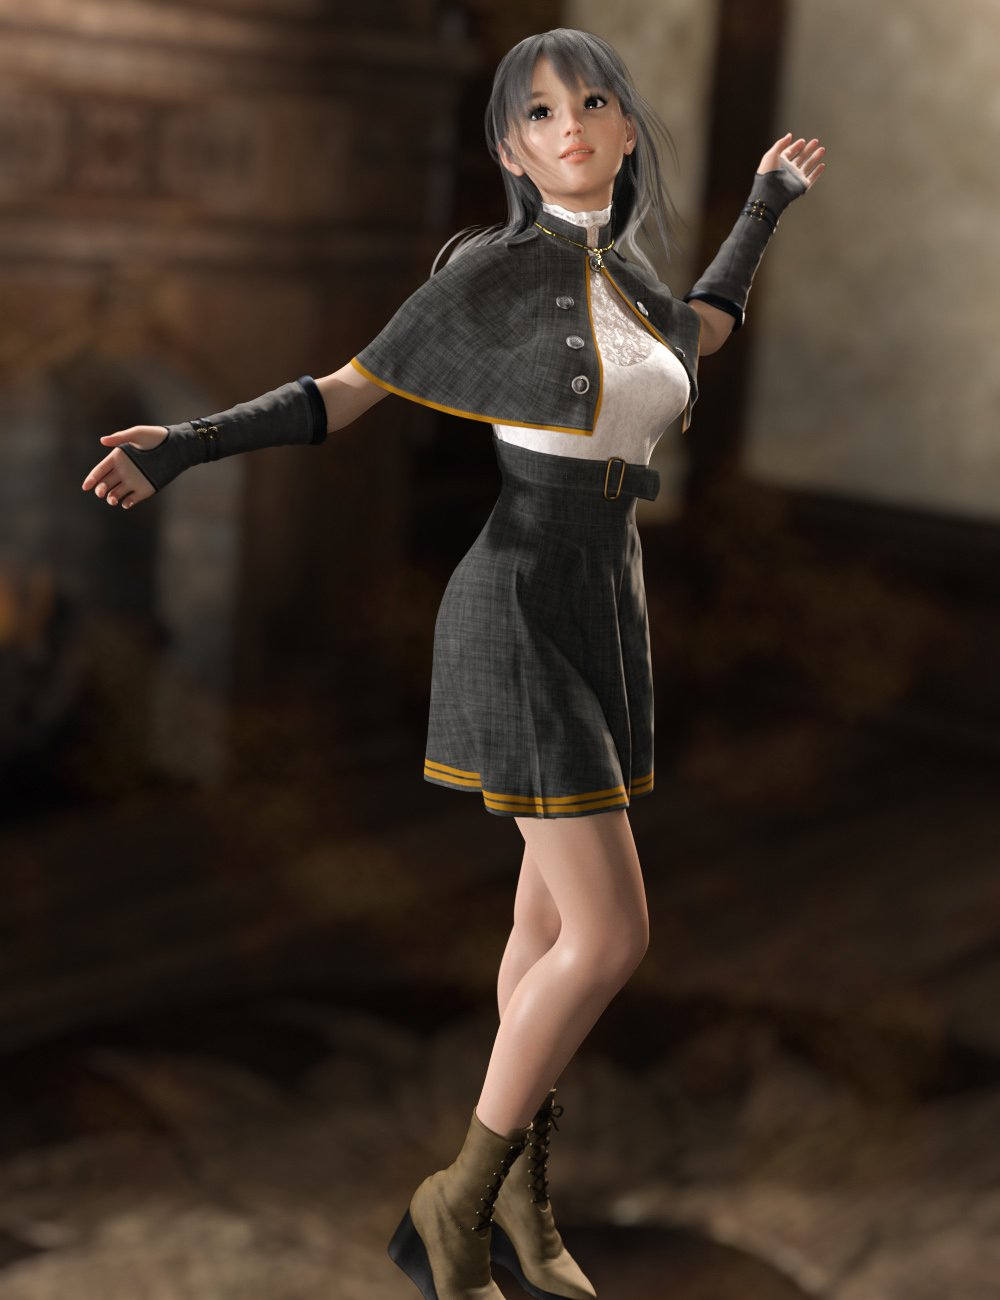 dForce Stylish Cleric Outfit for Genesis 8 Females by: tentman, 3D Models by Daz 3D